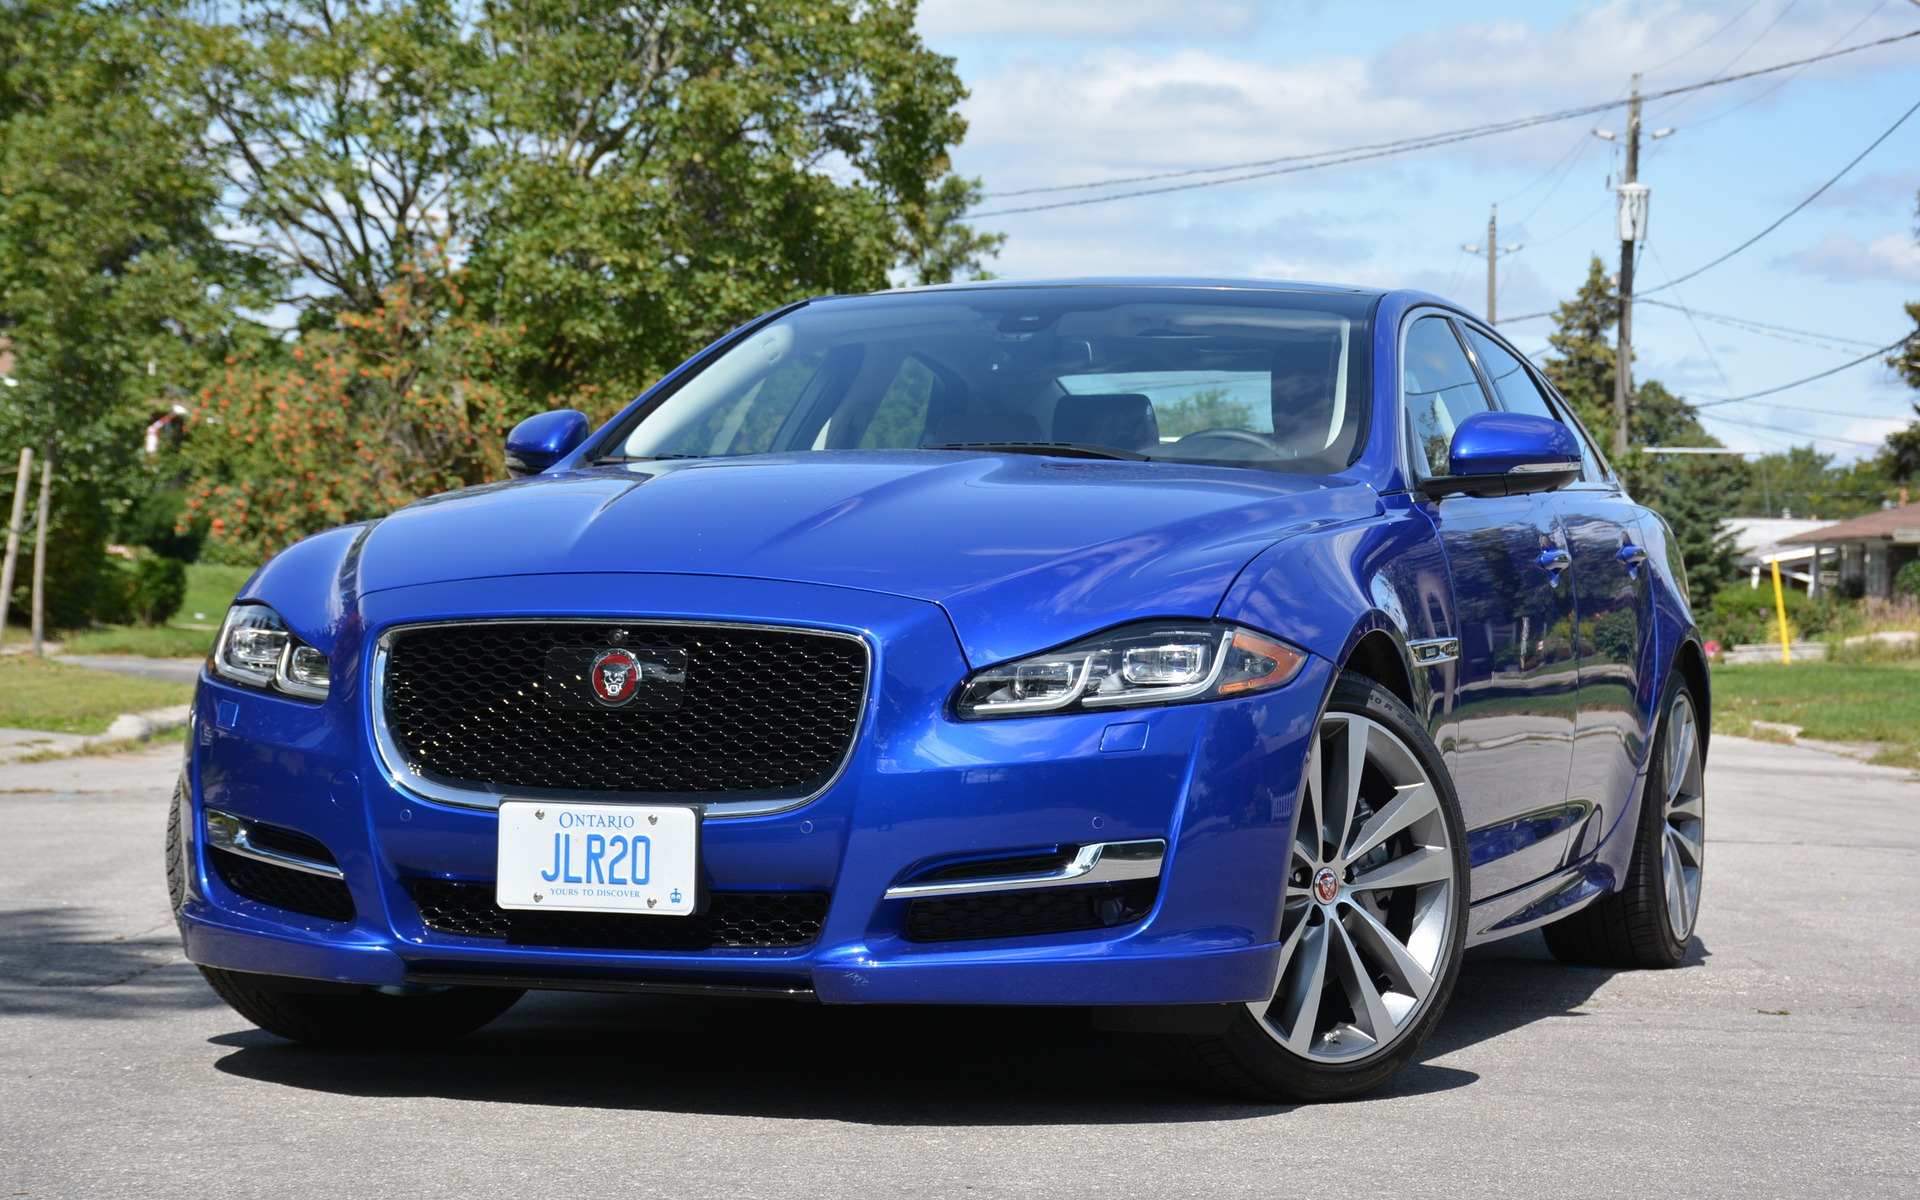 2017 jaguar xj still got the looks the car guide. Black Bedroom Furniture Sets. Home Design Ideas